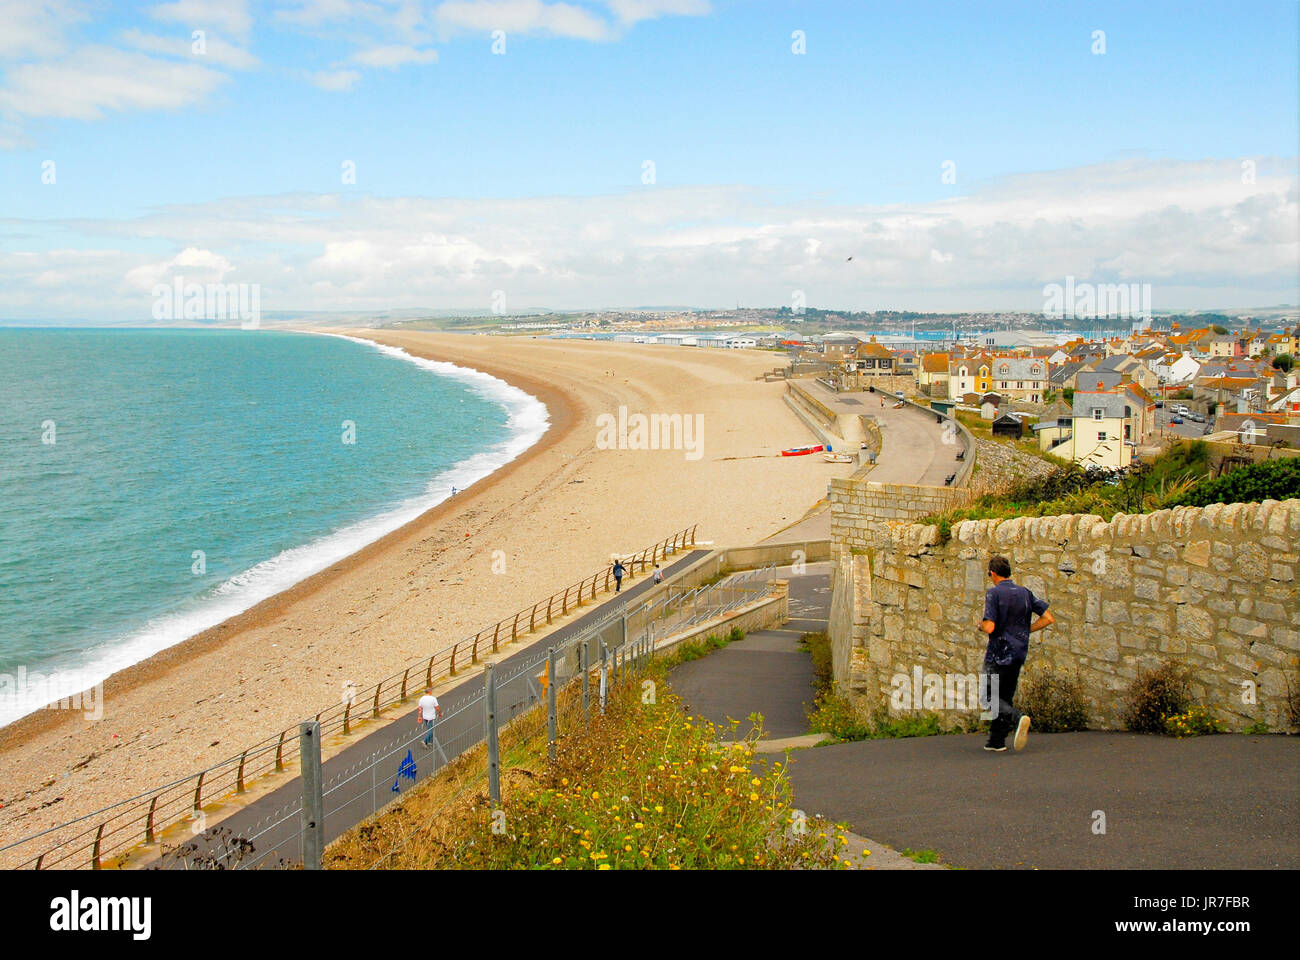 Chesil Beach, Dorset. 04th Aug, 2017. UK Weather: A man hurries down to his fishing boat on a bright and breezy day along Chesil Beach Credit: stuart fretwell/Alamy Live News - Stock Image